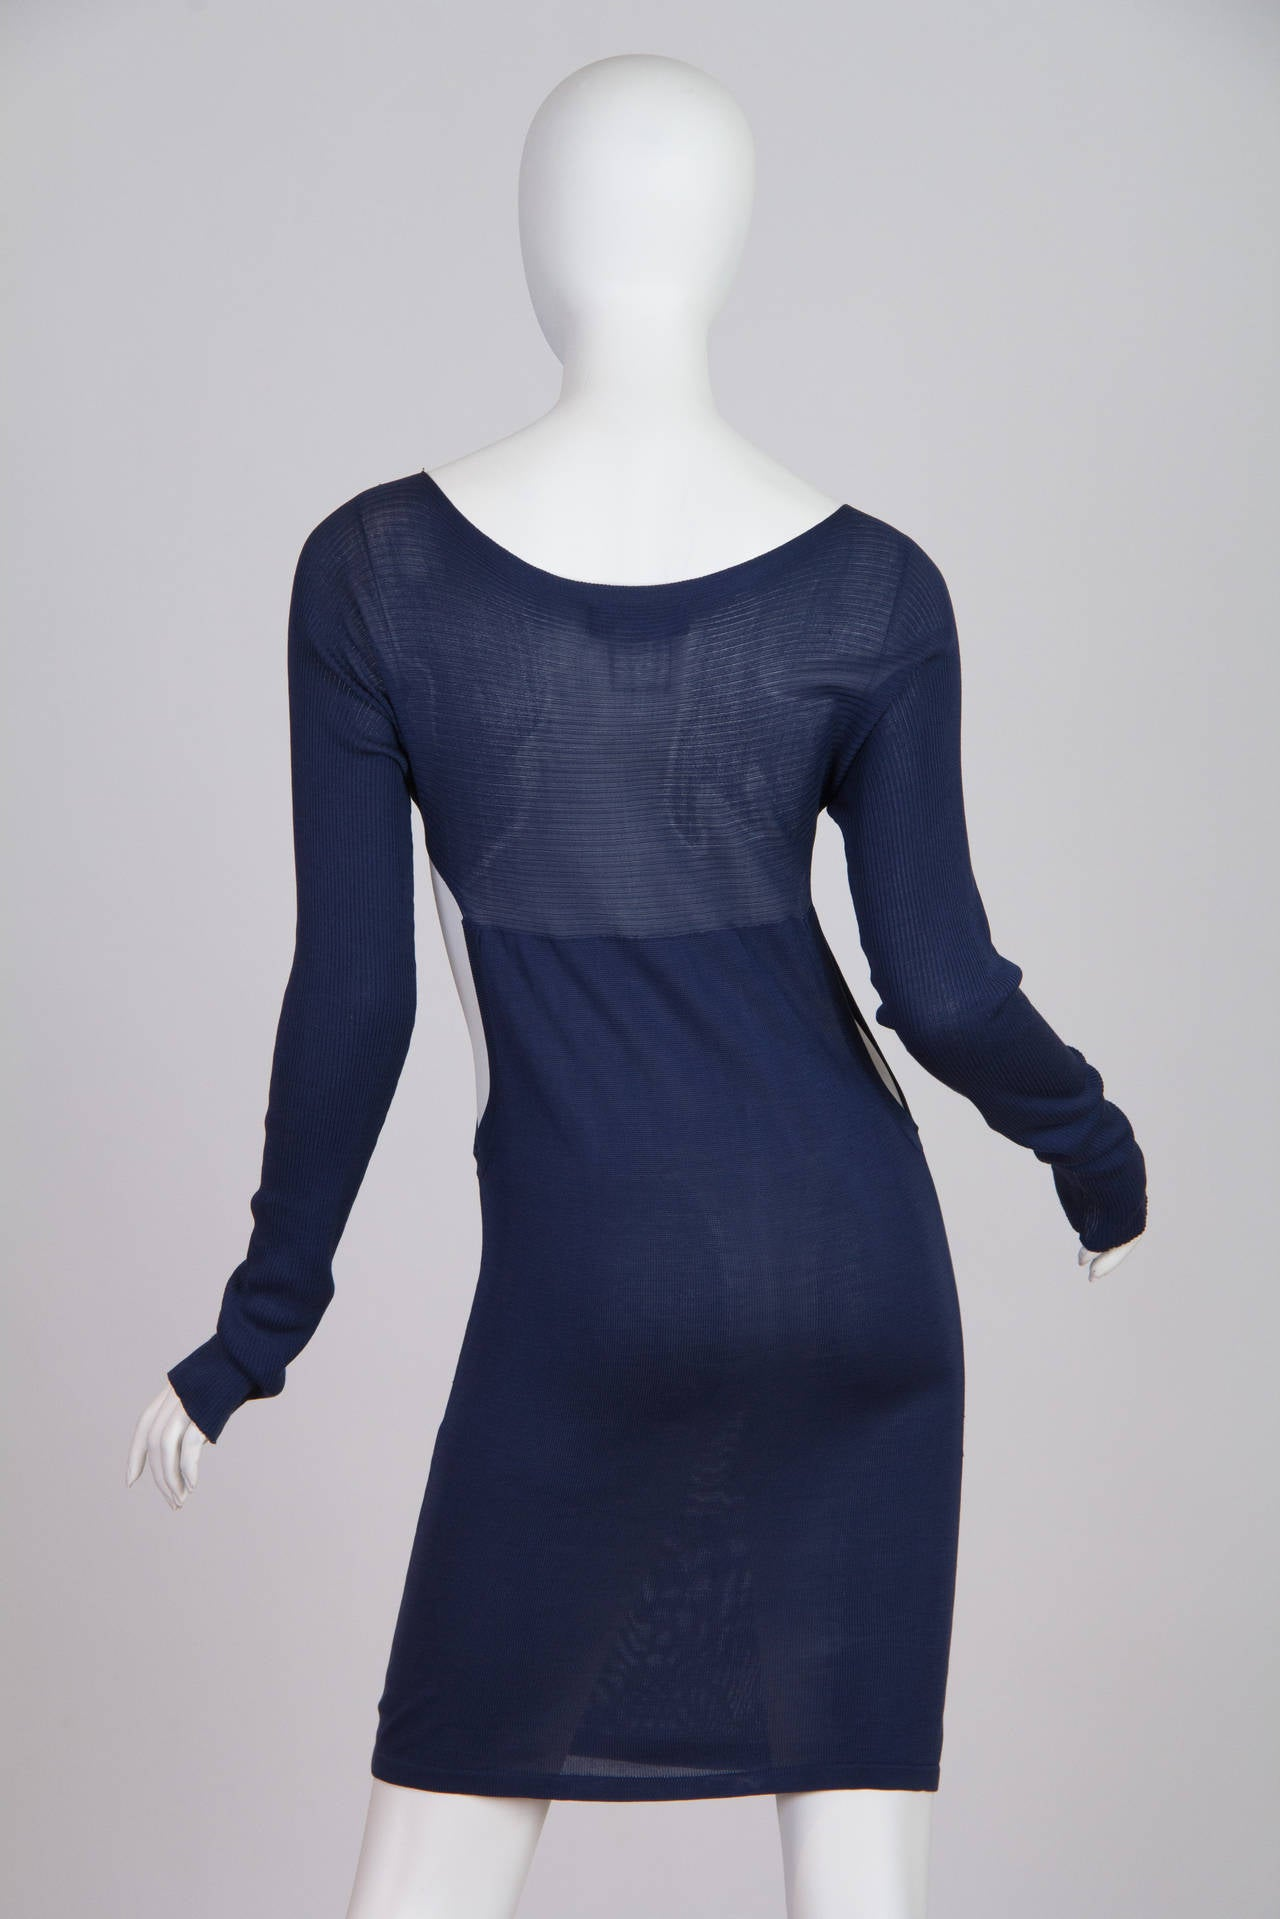 This is a long-sleeved semi-sheer sheath dress in navy blue, made of 100% silk. Large cutouts on the sides add interest and increase the dress's layering possibilities, while adding edge to an otherwise-classic shape. The flattering neckline and